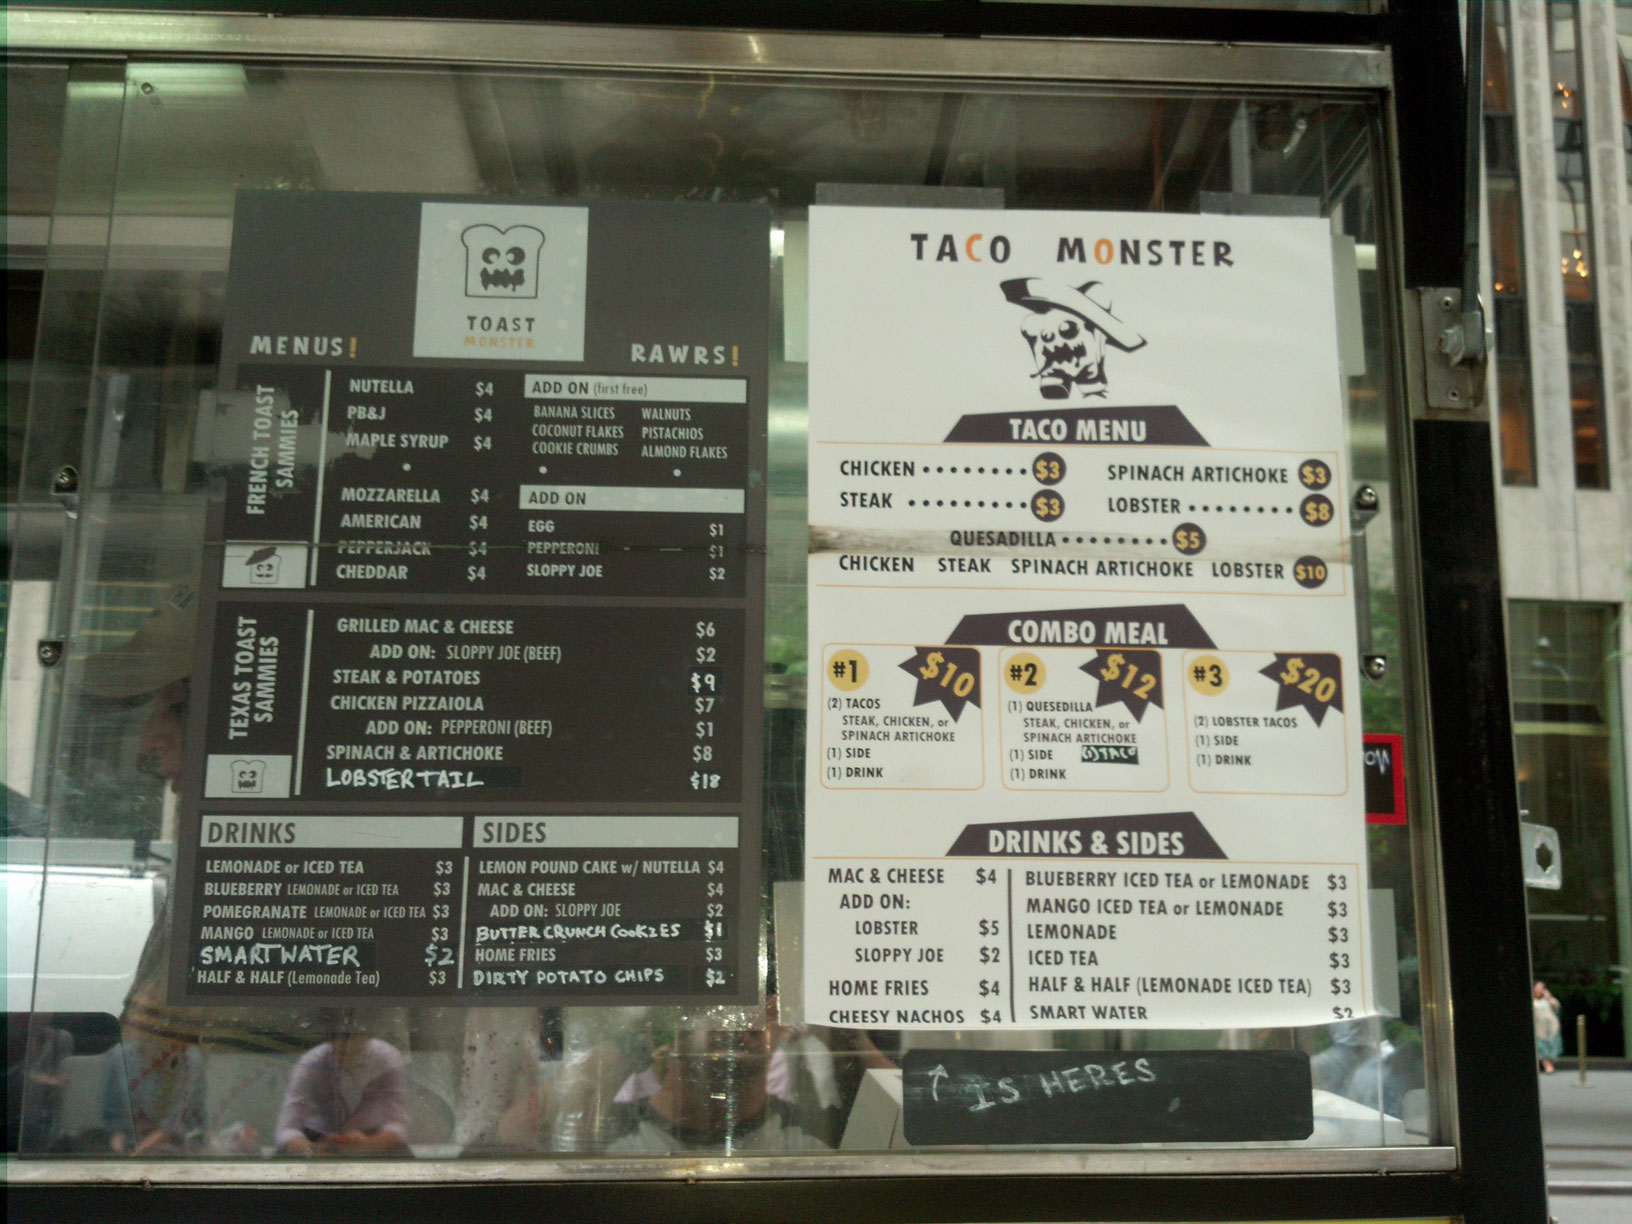 Toast Monster's Enticing Menu